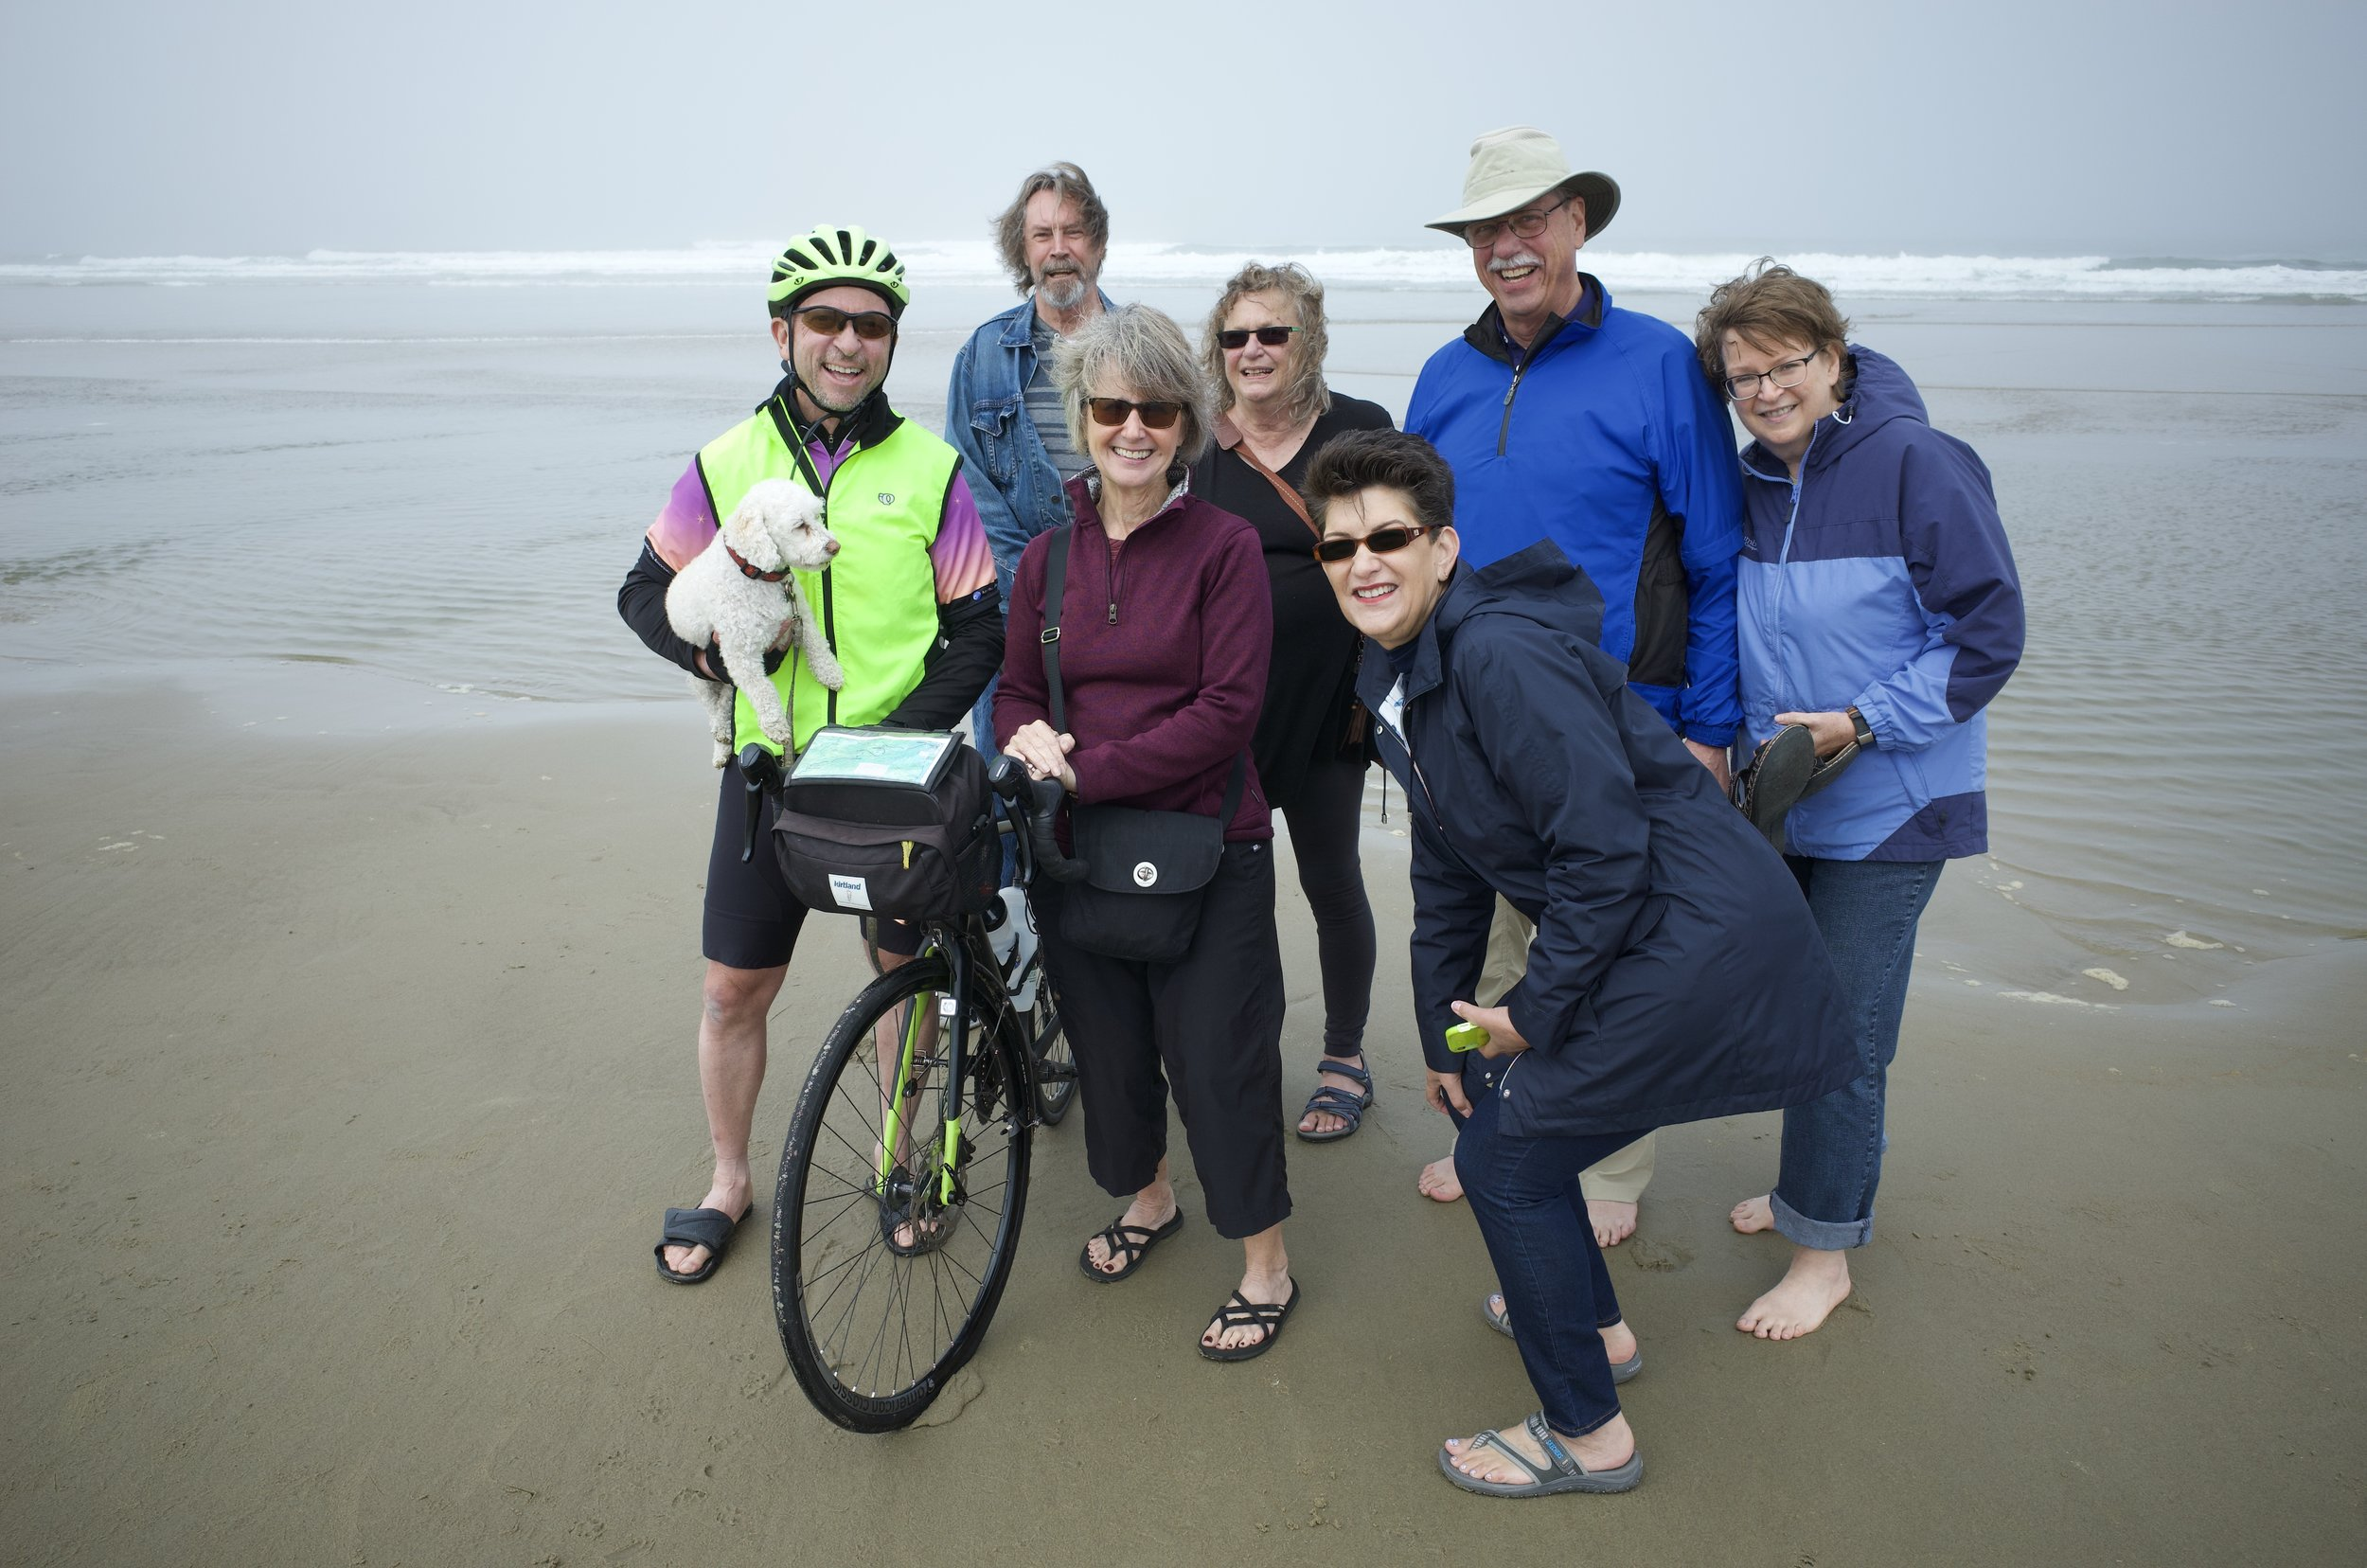 The Florence OR celebratory group - missing Ron Brooks, Sharon Holland, and Carol and Rad Hatch